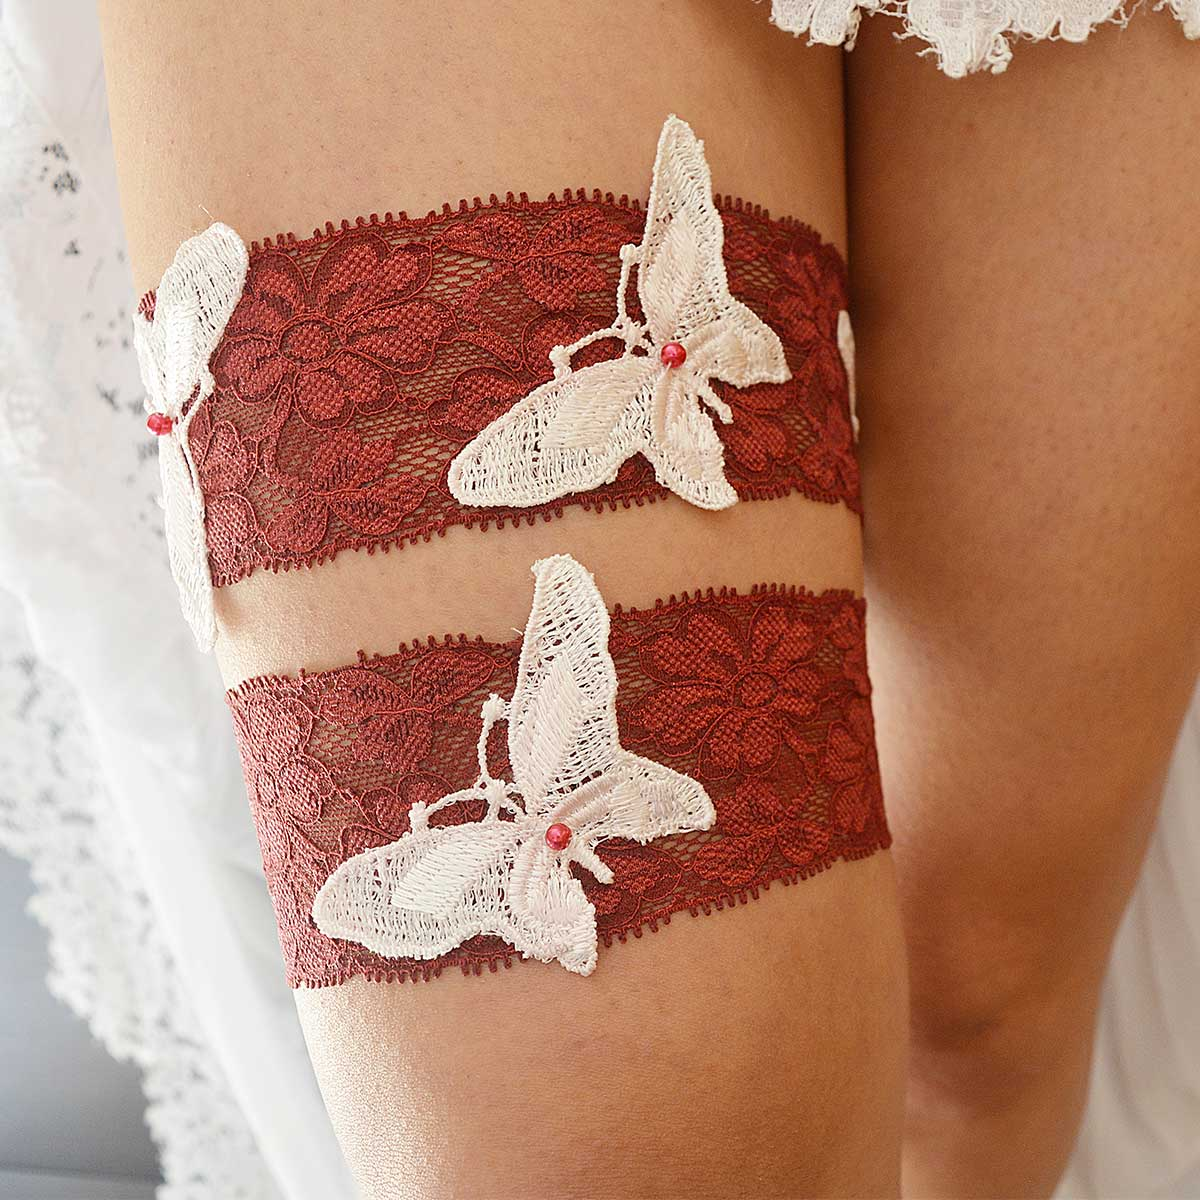 Burgundy Bridal Garter With White Butterfly Applique & Pearls